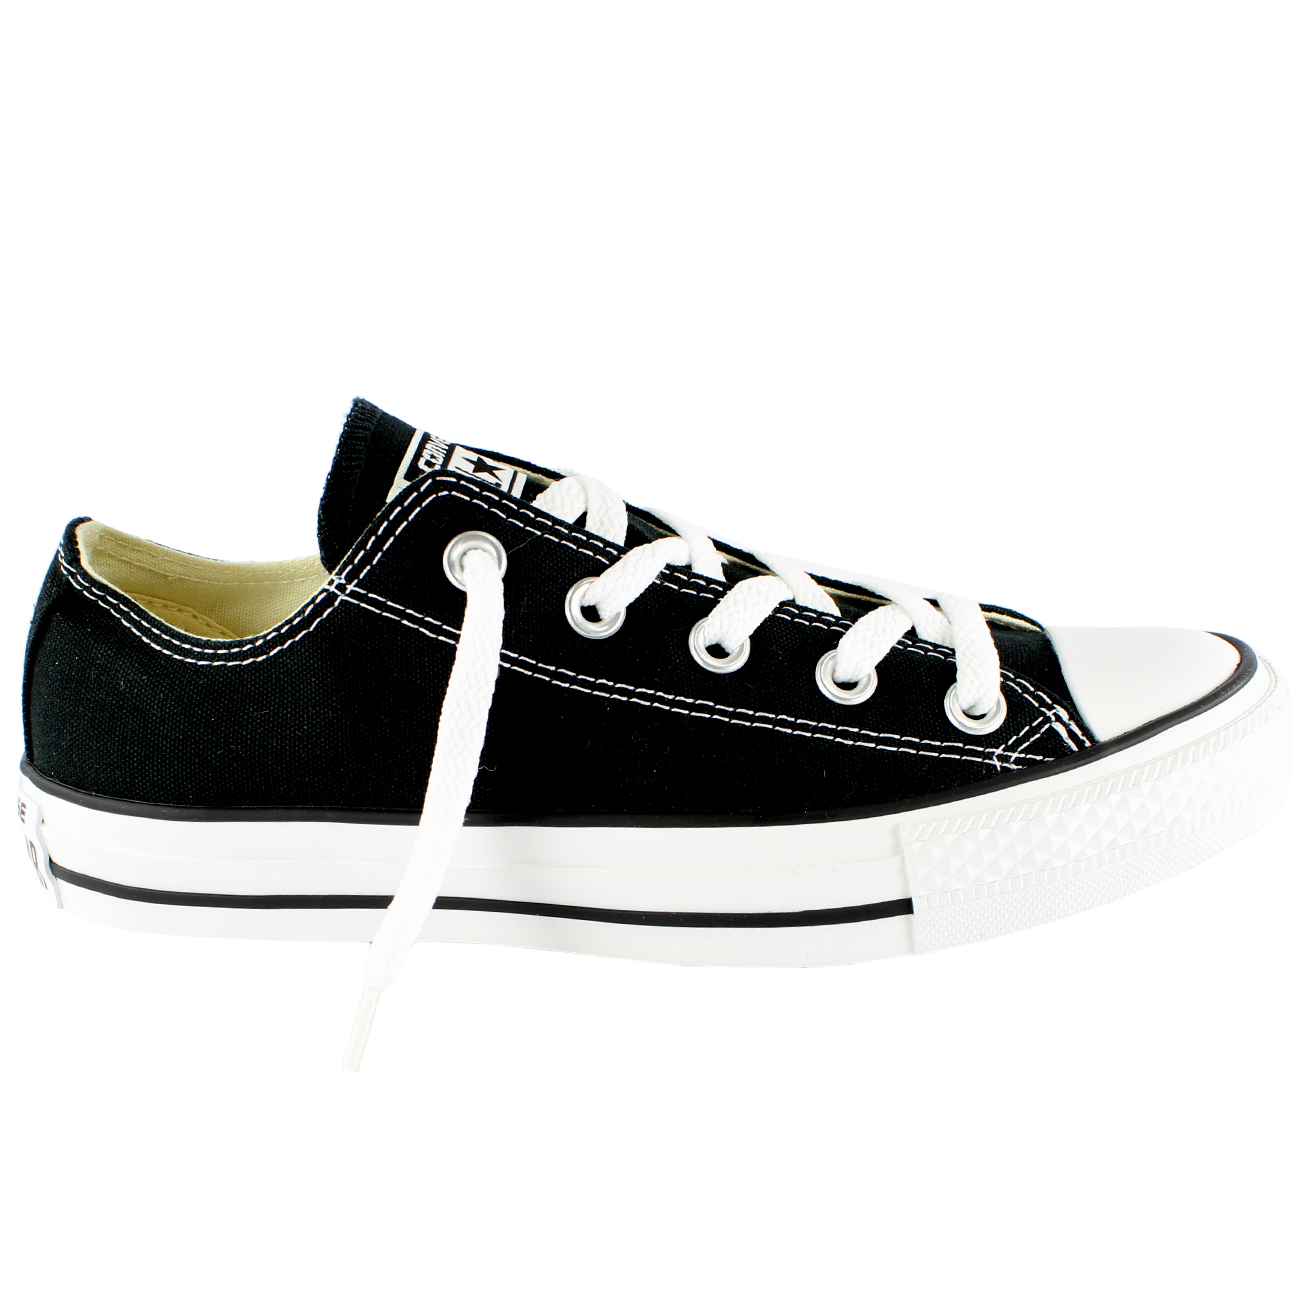 afdcdcec8e108d Womens Converse All Star Ox Low Chuck Taylor Chucks Sneakers New US Sizes  5-9.5